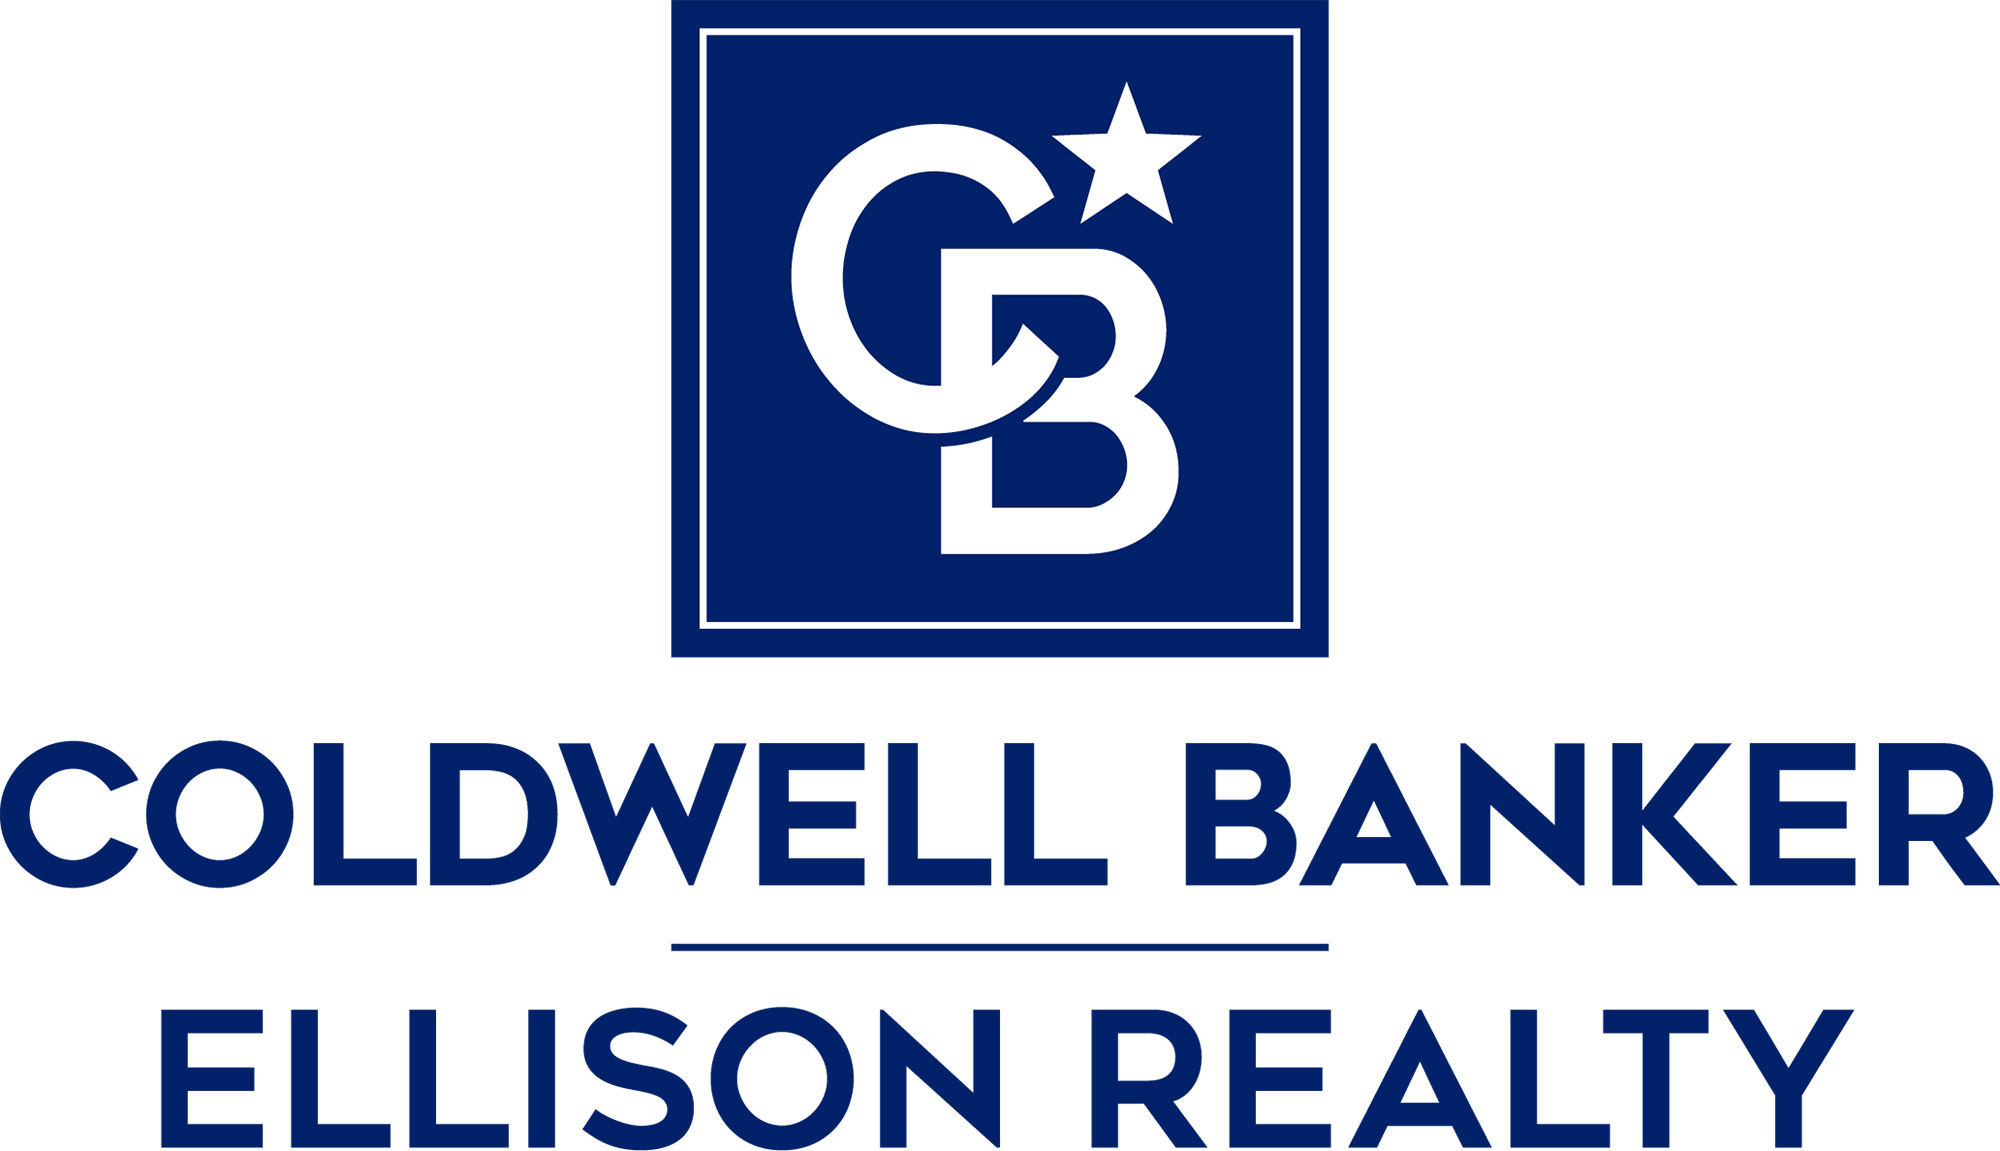 Darla Lee Priest, LLC - Coldwell Banker Ellison Realty Logo